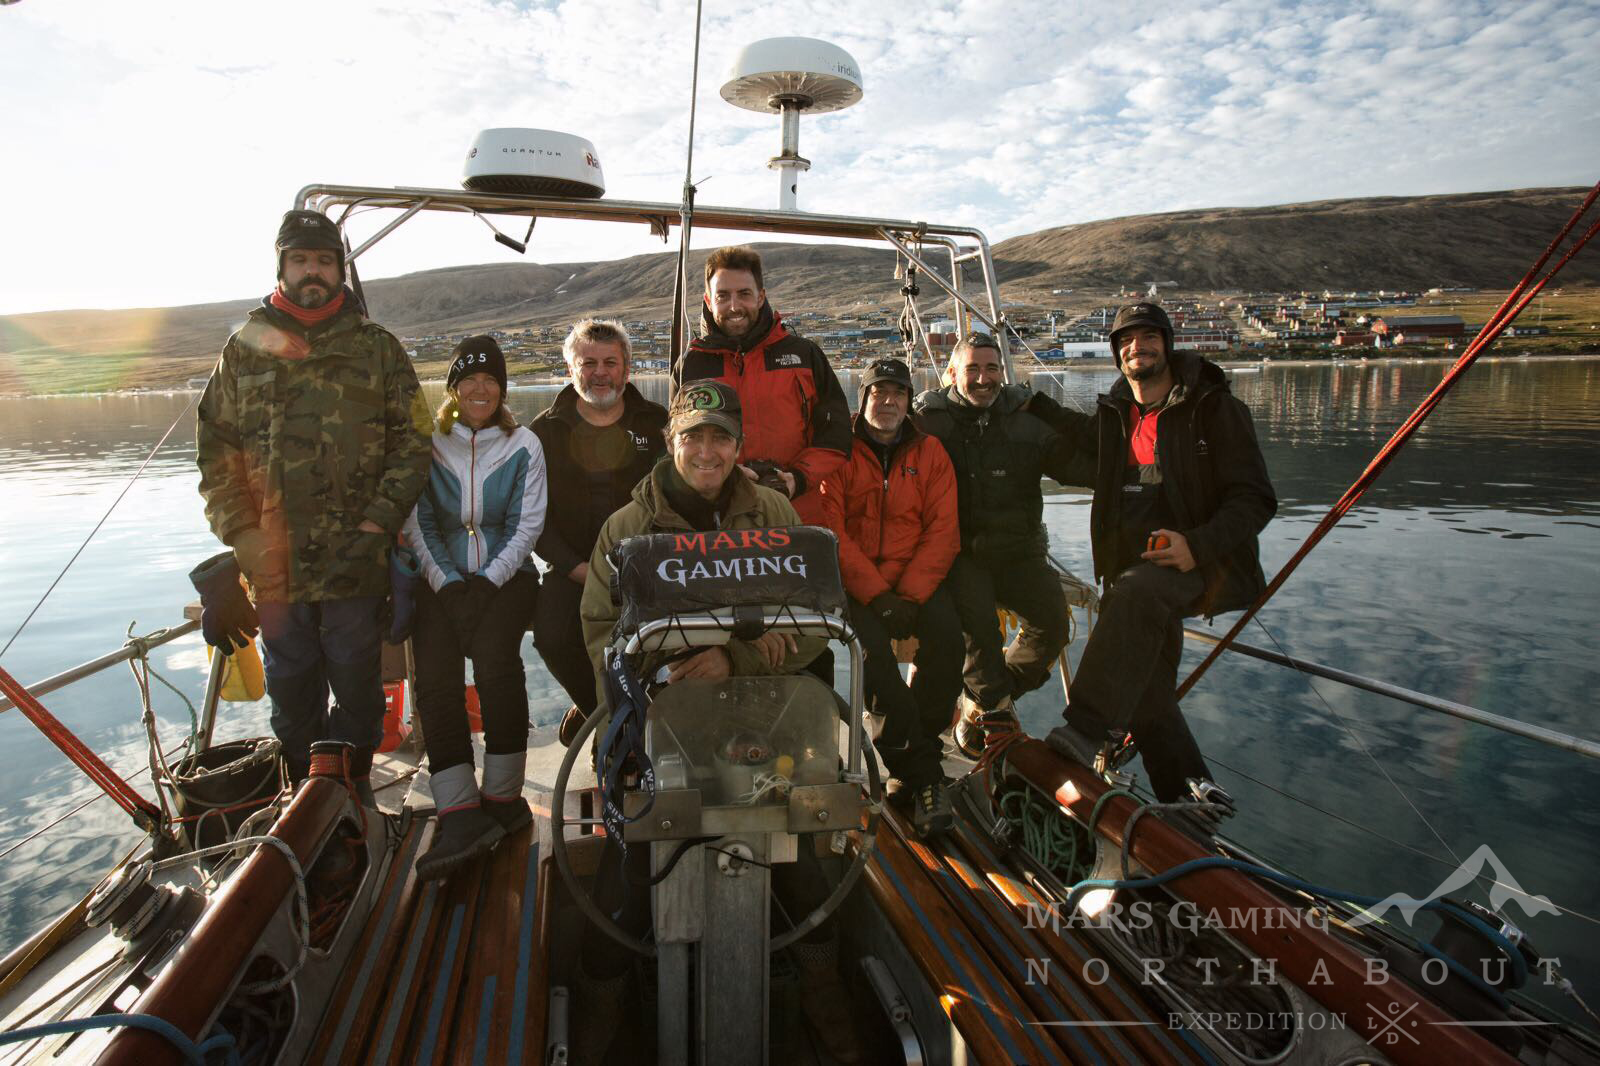 Equipo Mars Gaming Expedition en Qaanaaq